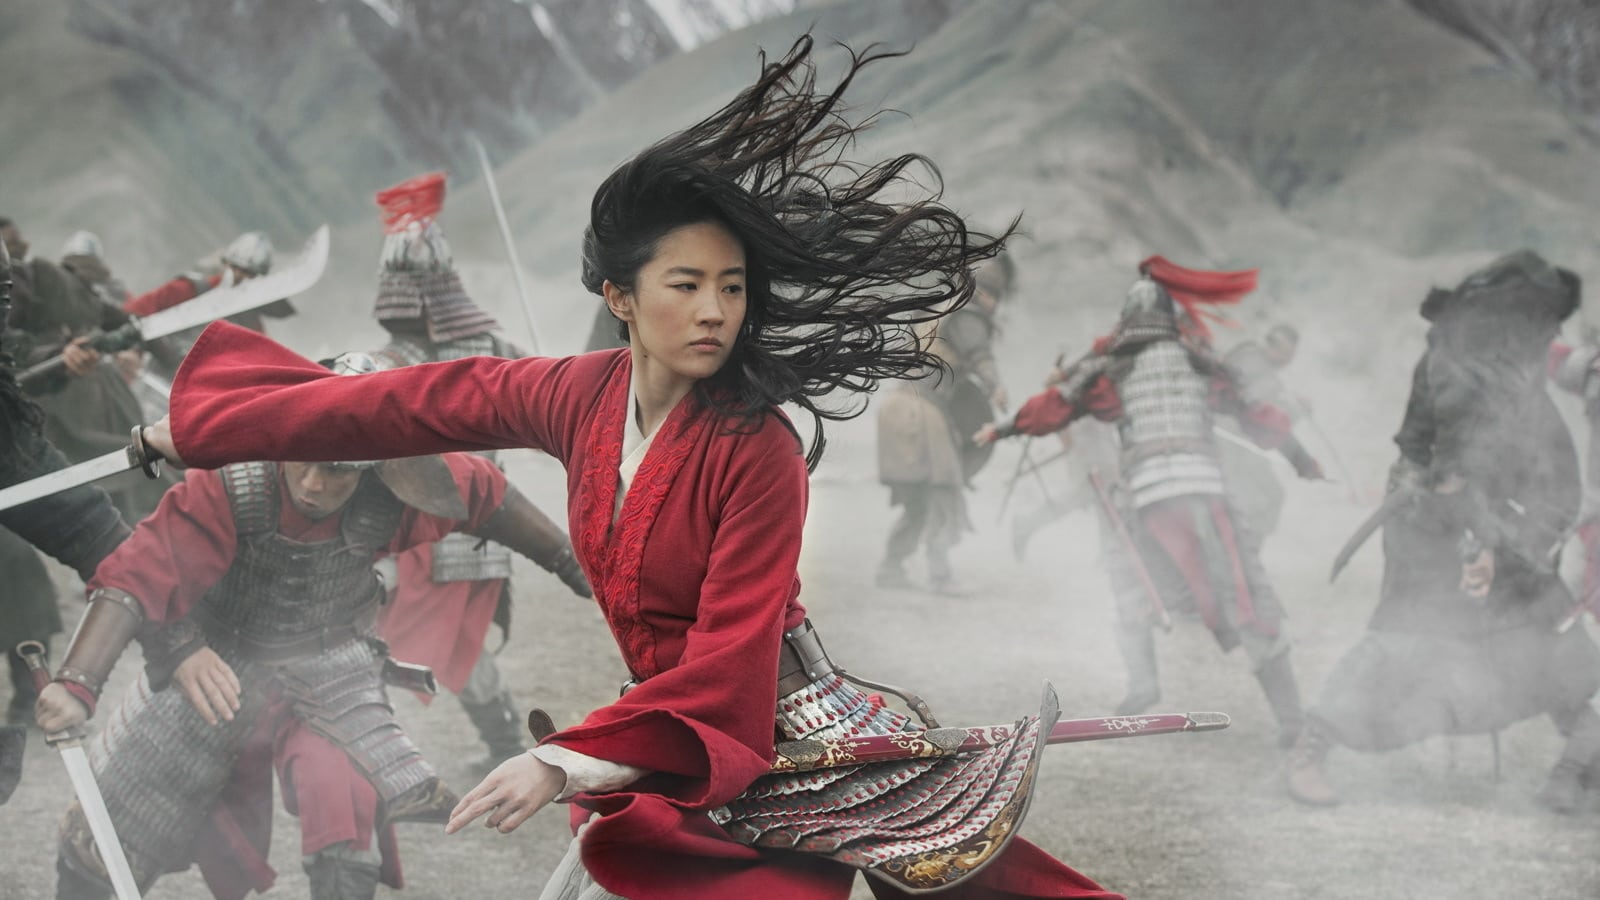 Review: Mulan (2020)